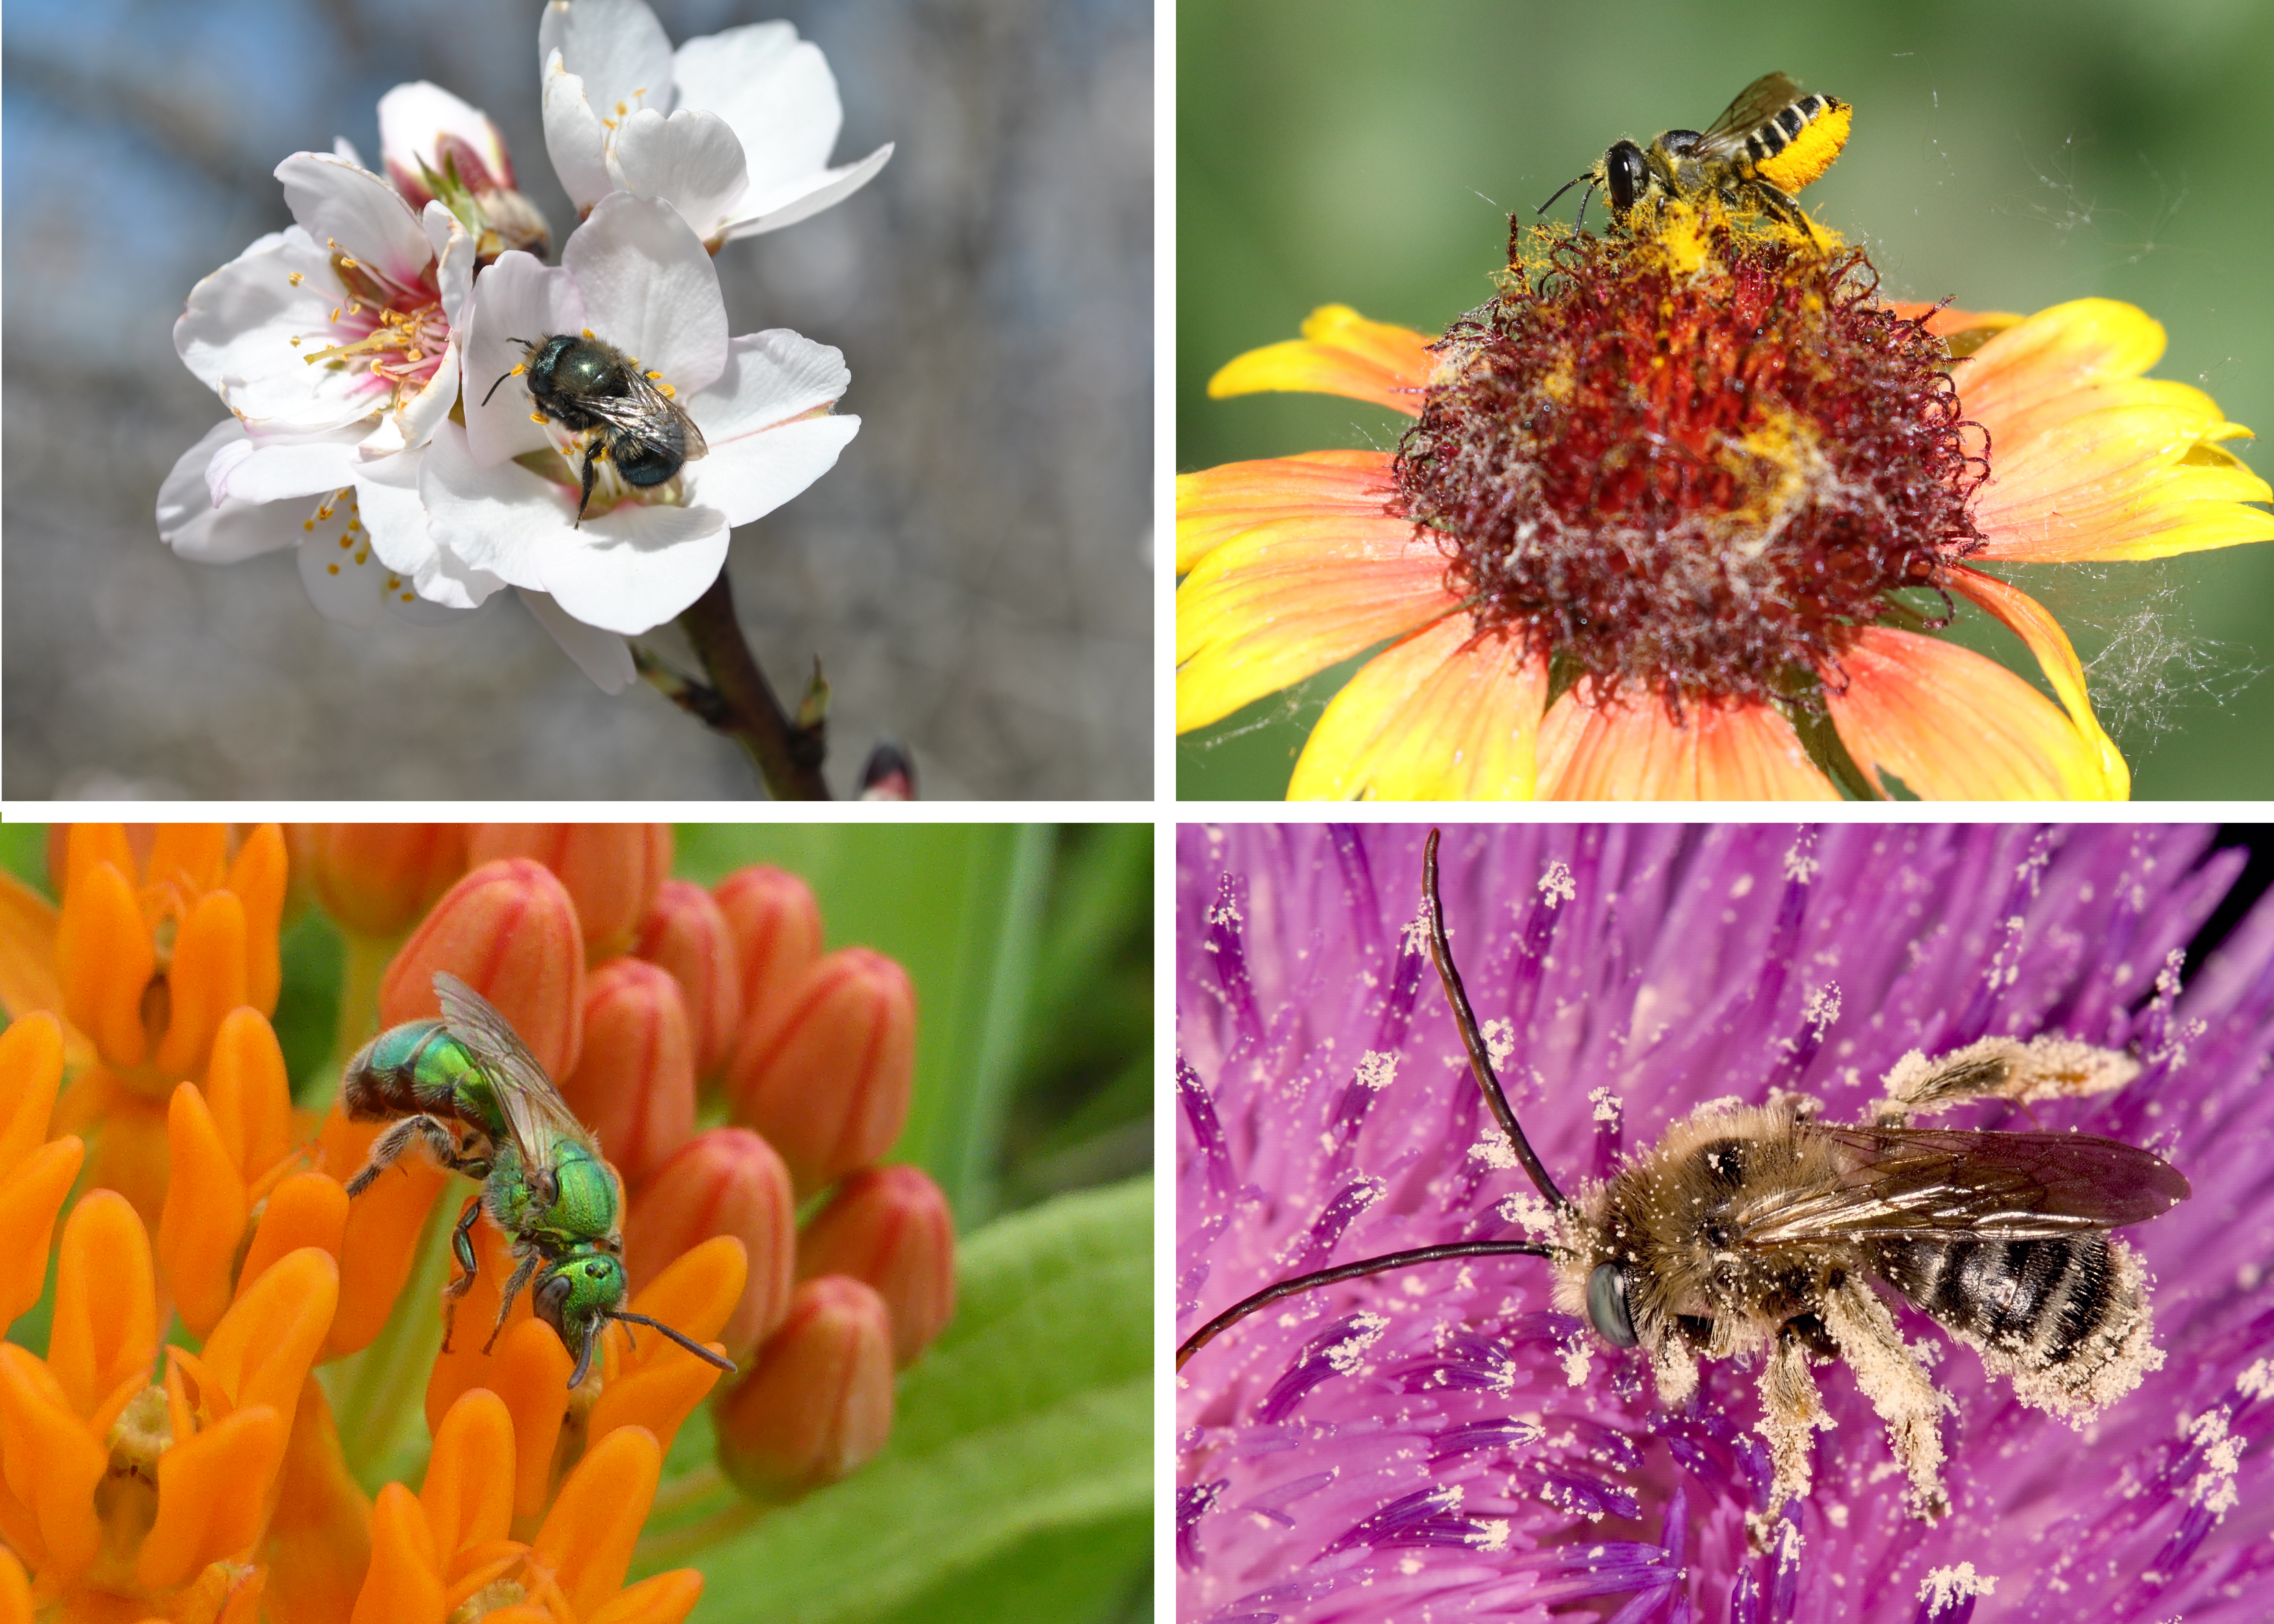 Brightly colored images of a diversity of bee species are shown in this grid.